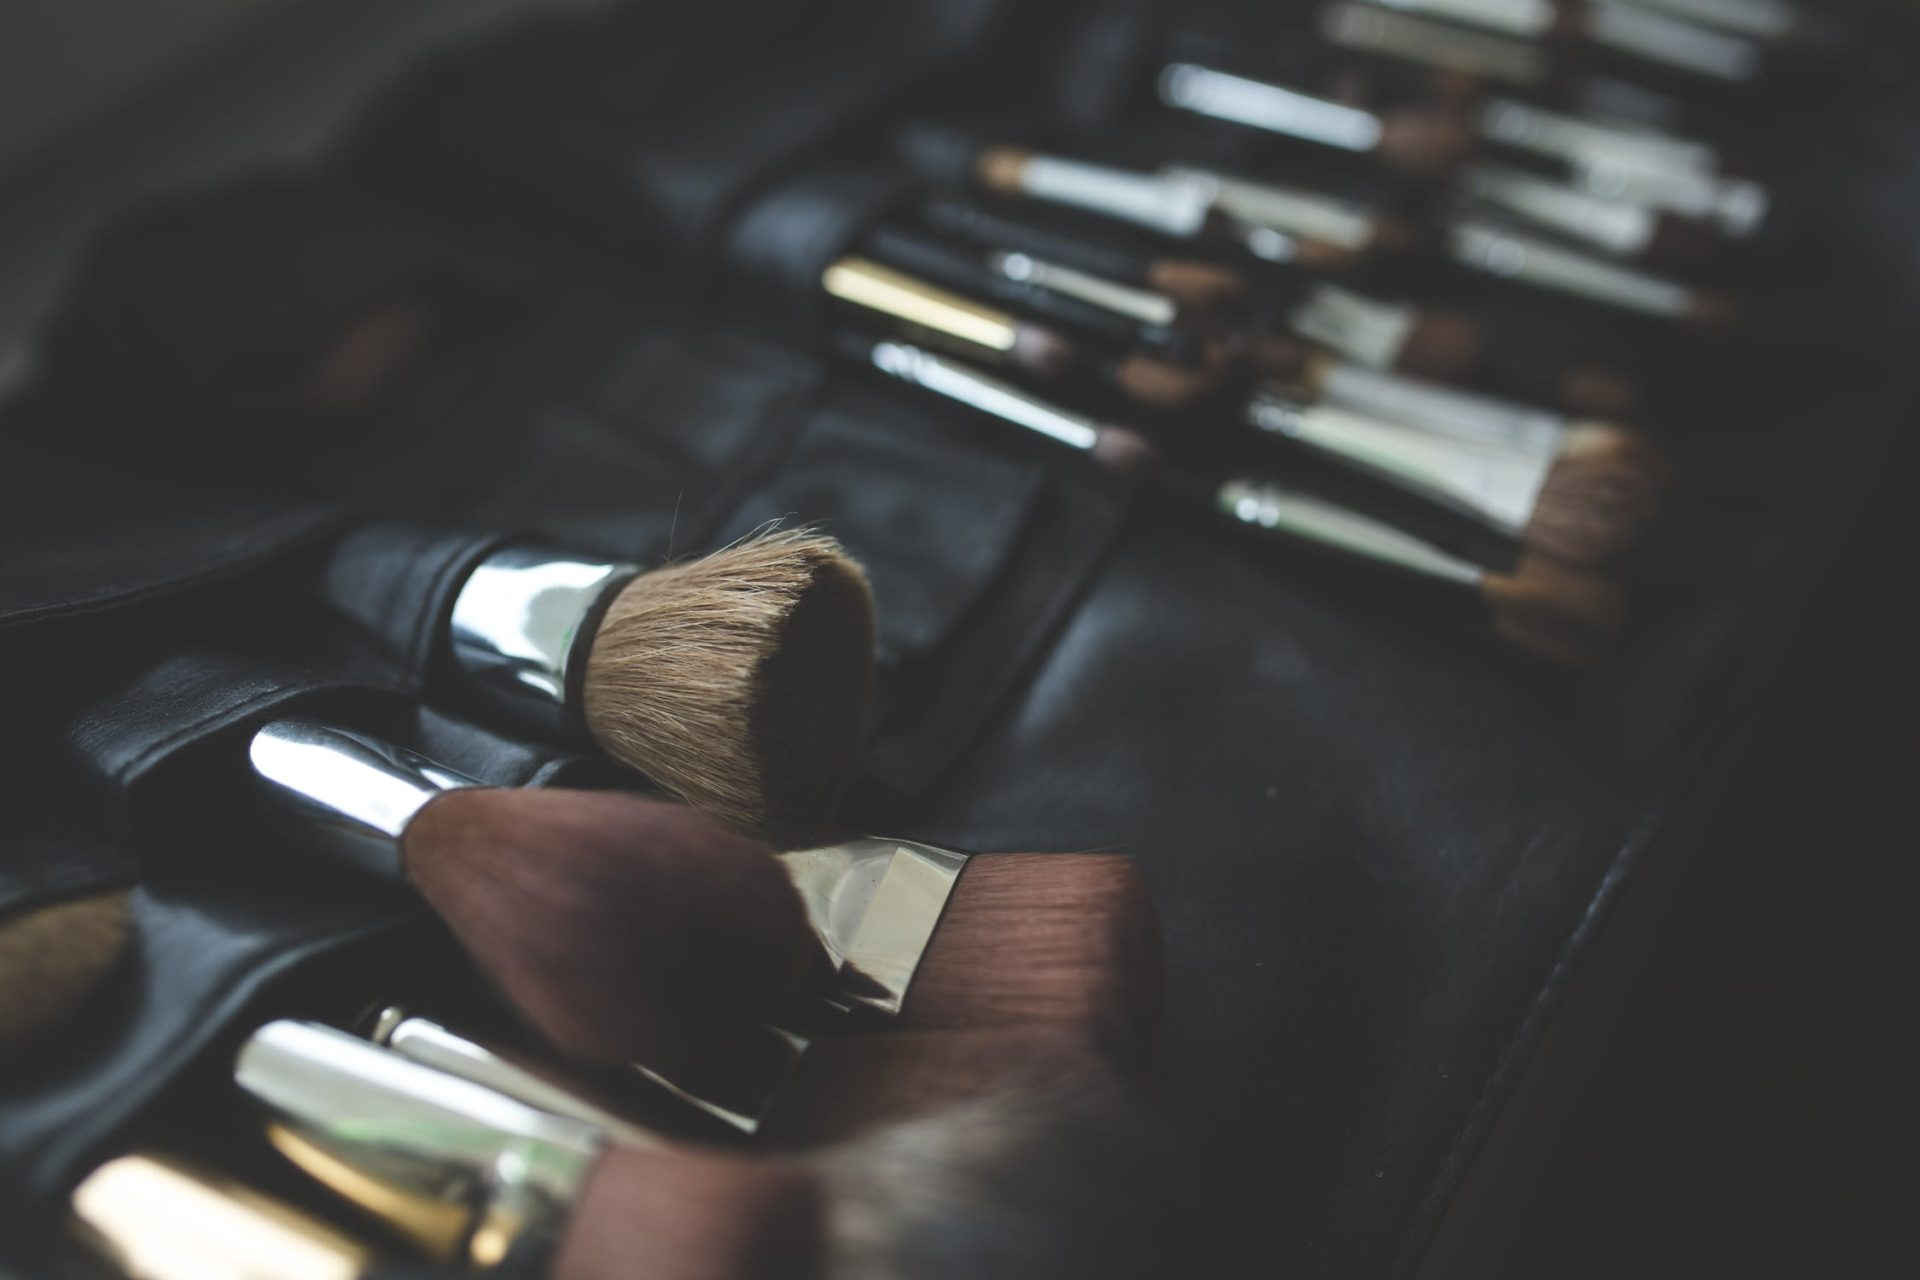 types of makeup brushes and how to use the